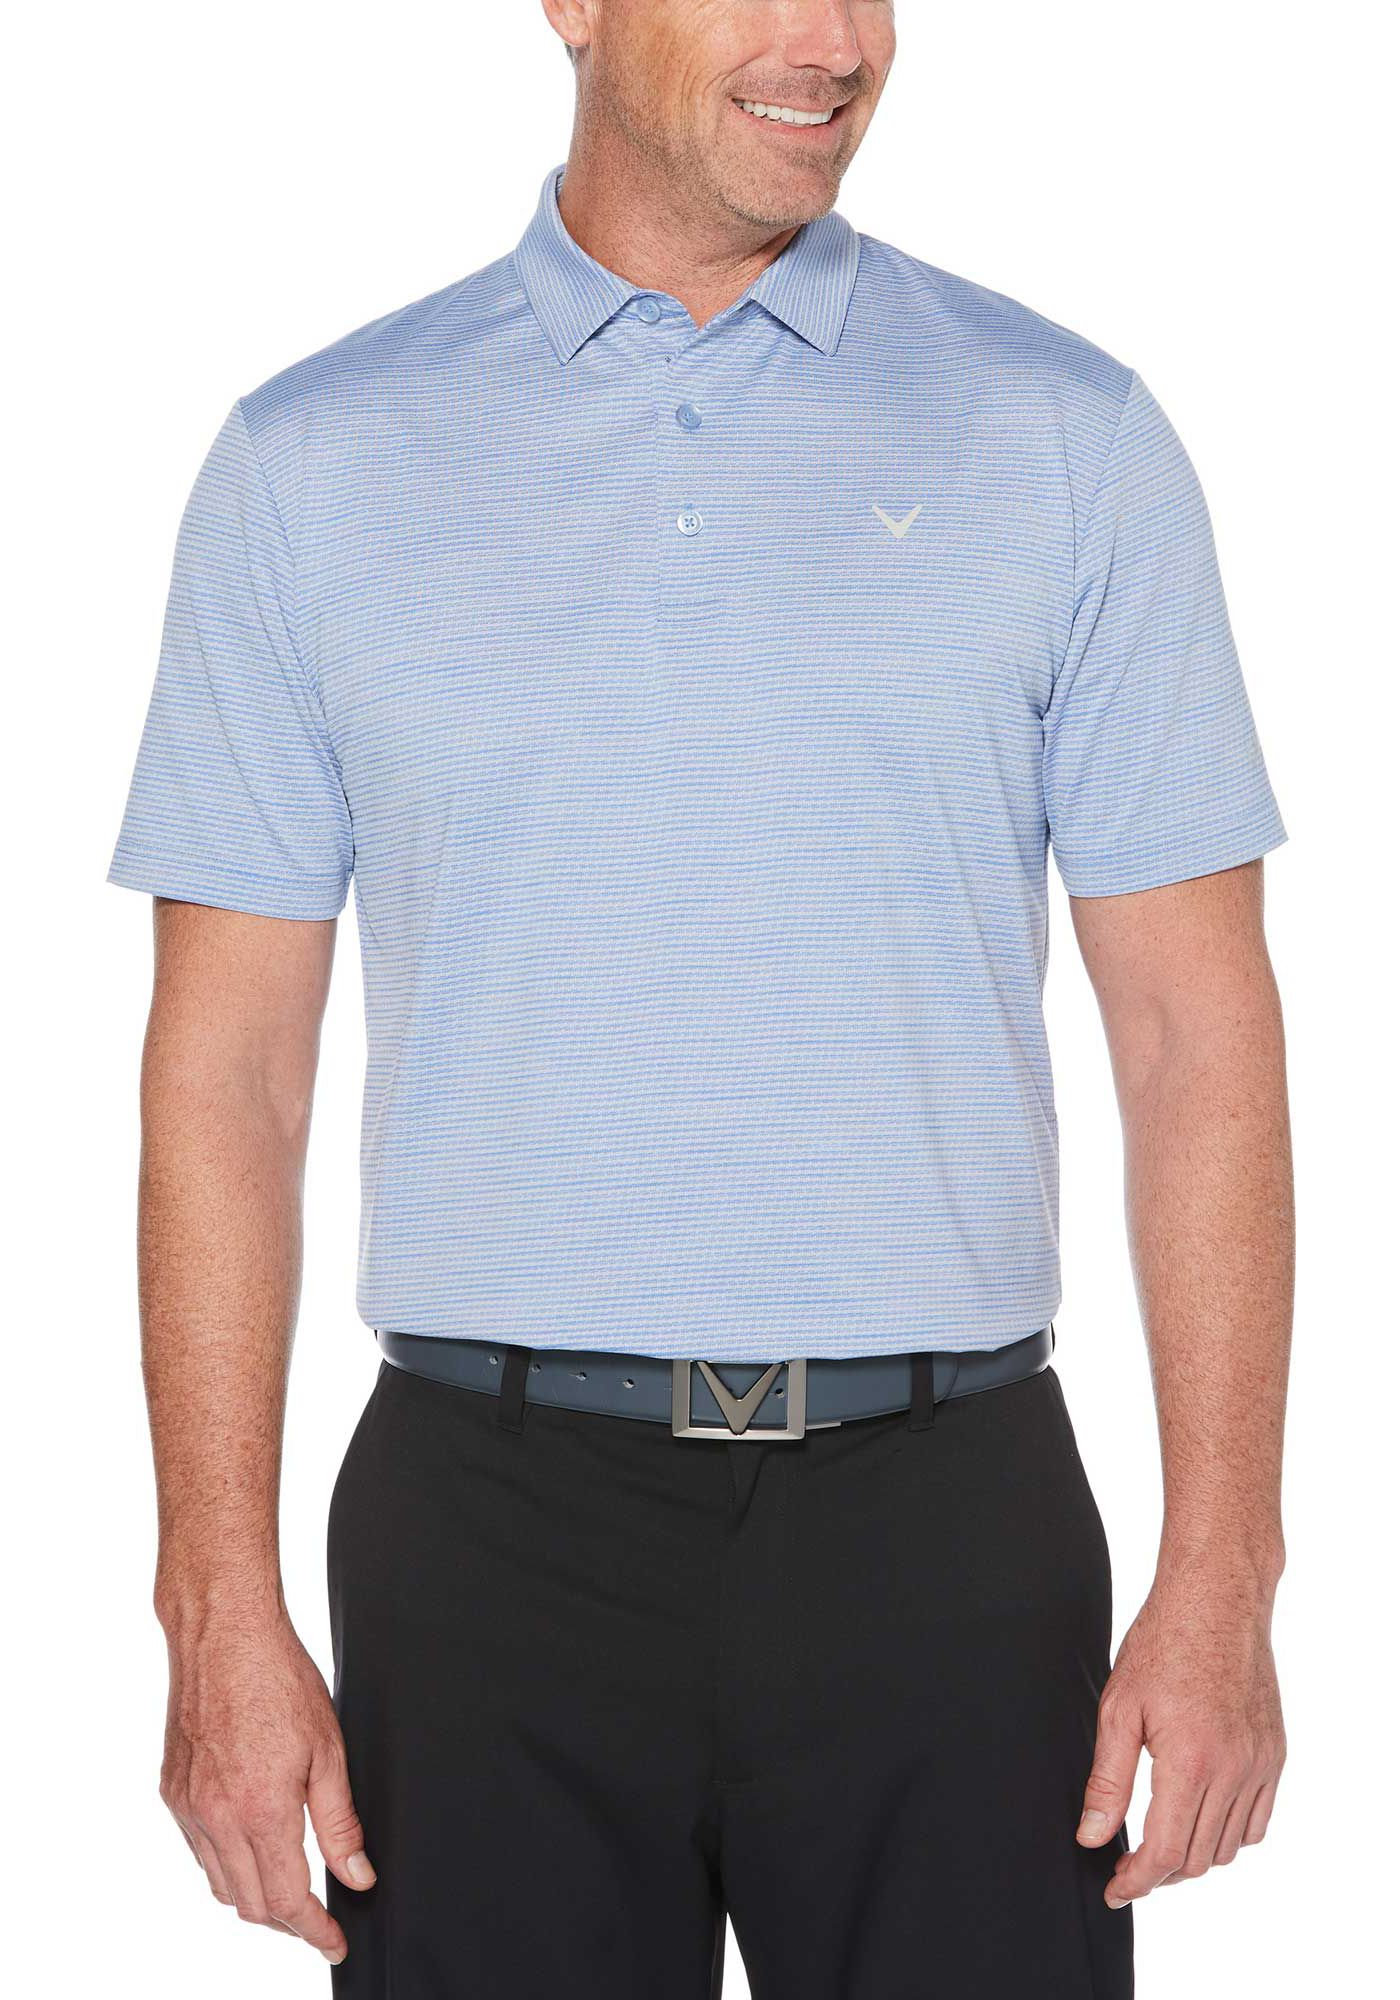 Callaway Men's Space Dye Jacquard Golf Polo